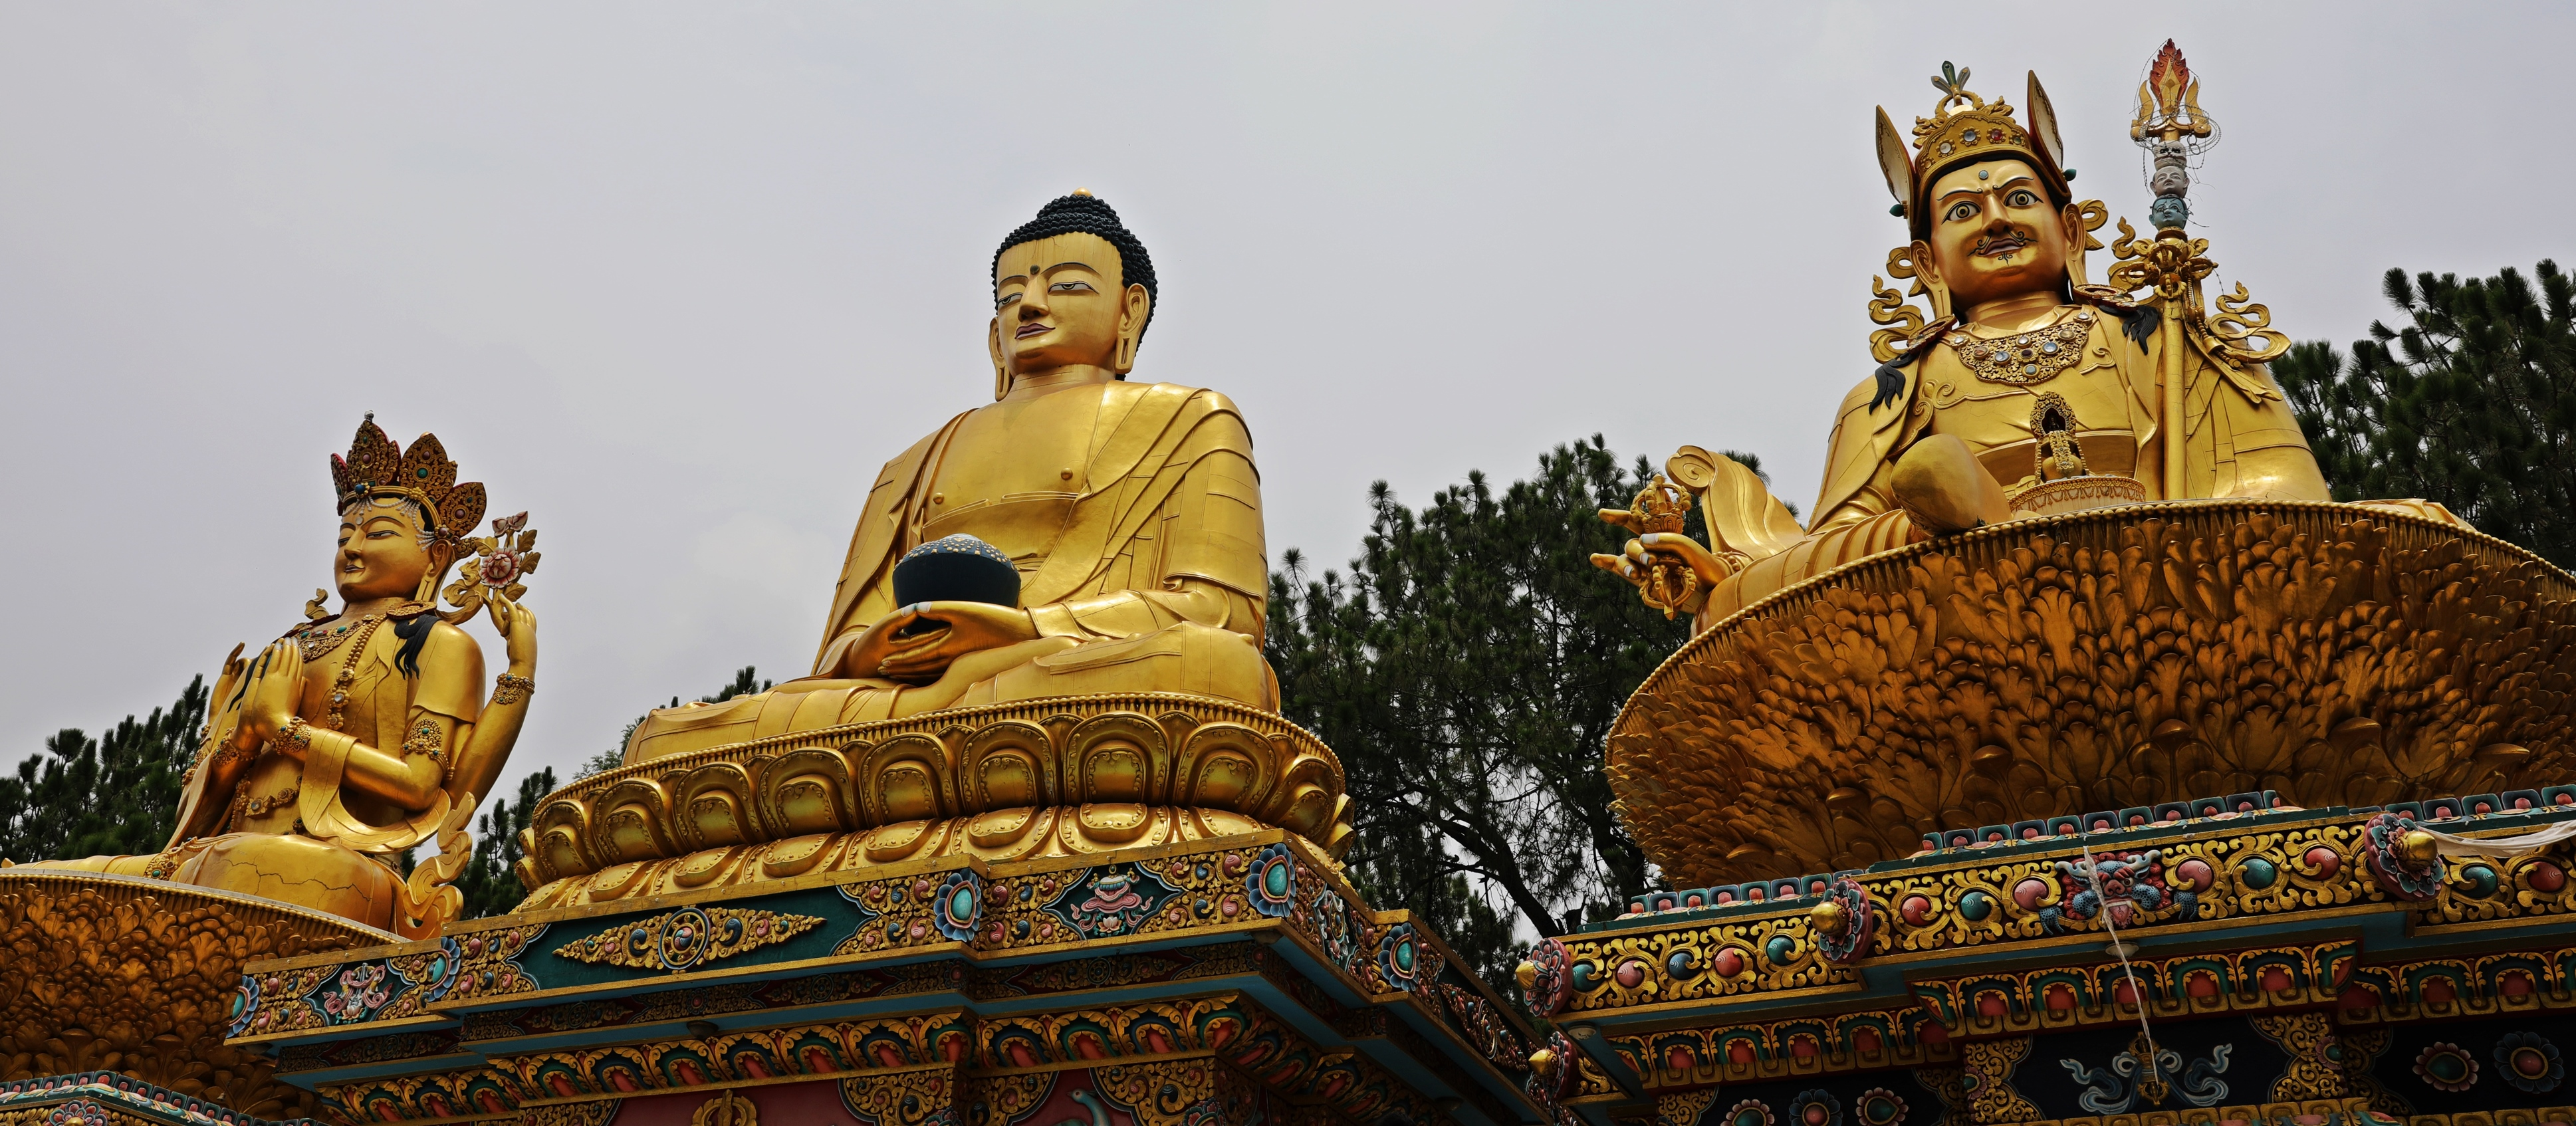 Statues on the Swayambhunath kora